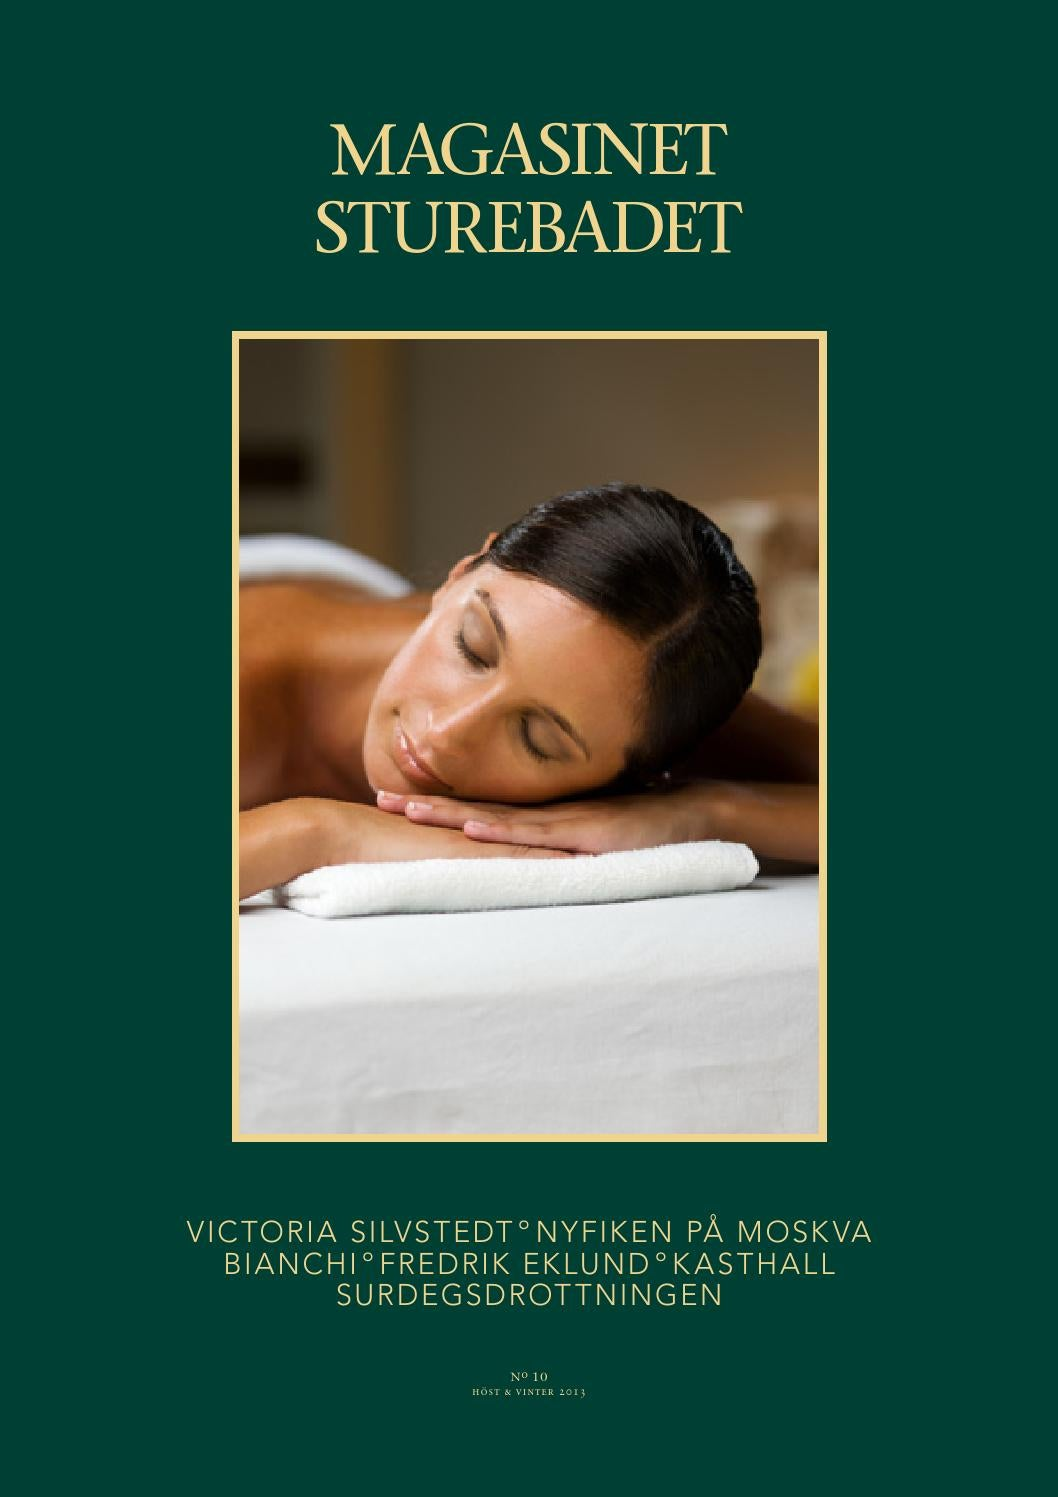 Magasinet Sturebadet Nr 10 by Magasinet Sturebadet - issuu 6a2477f954306